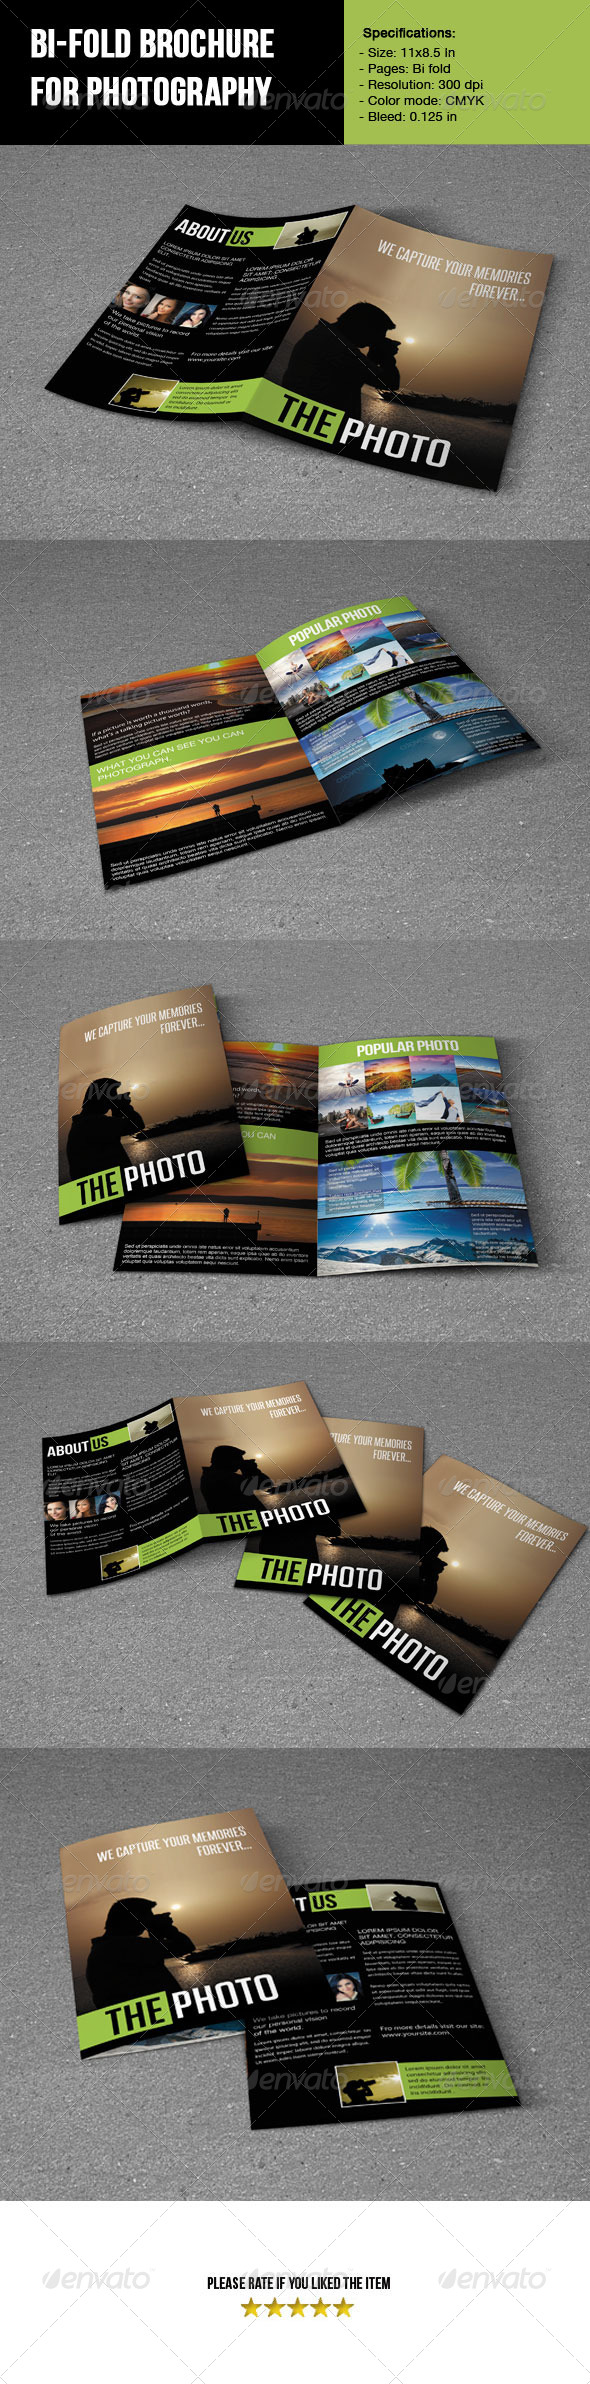 GraphicRiver Bifold Brochure For Photography 5080828